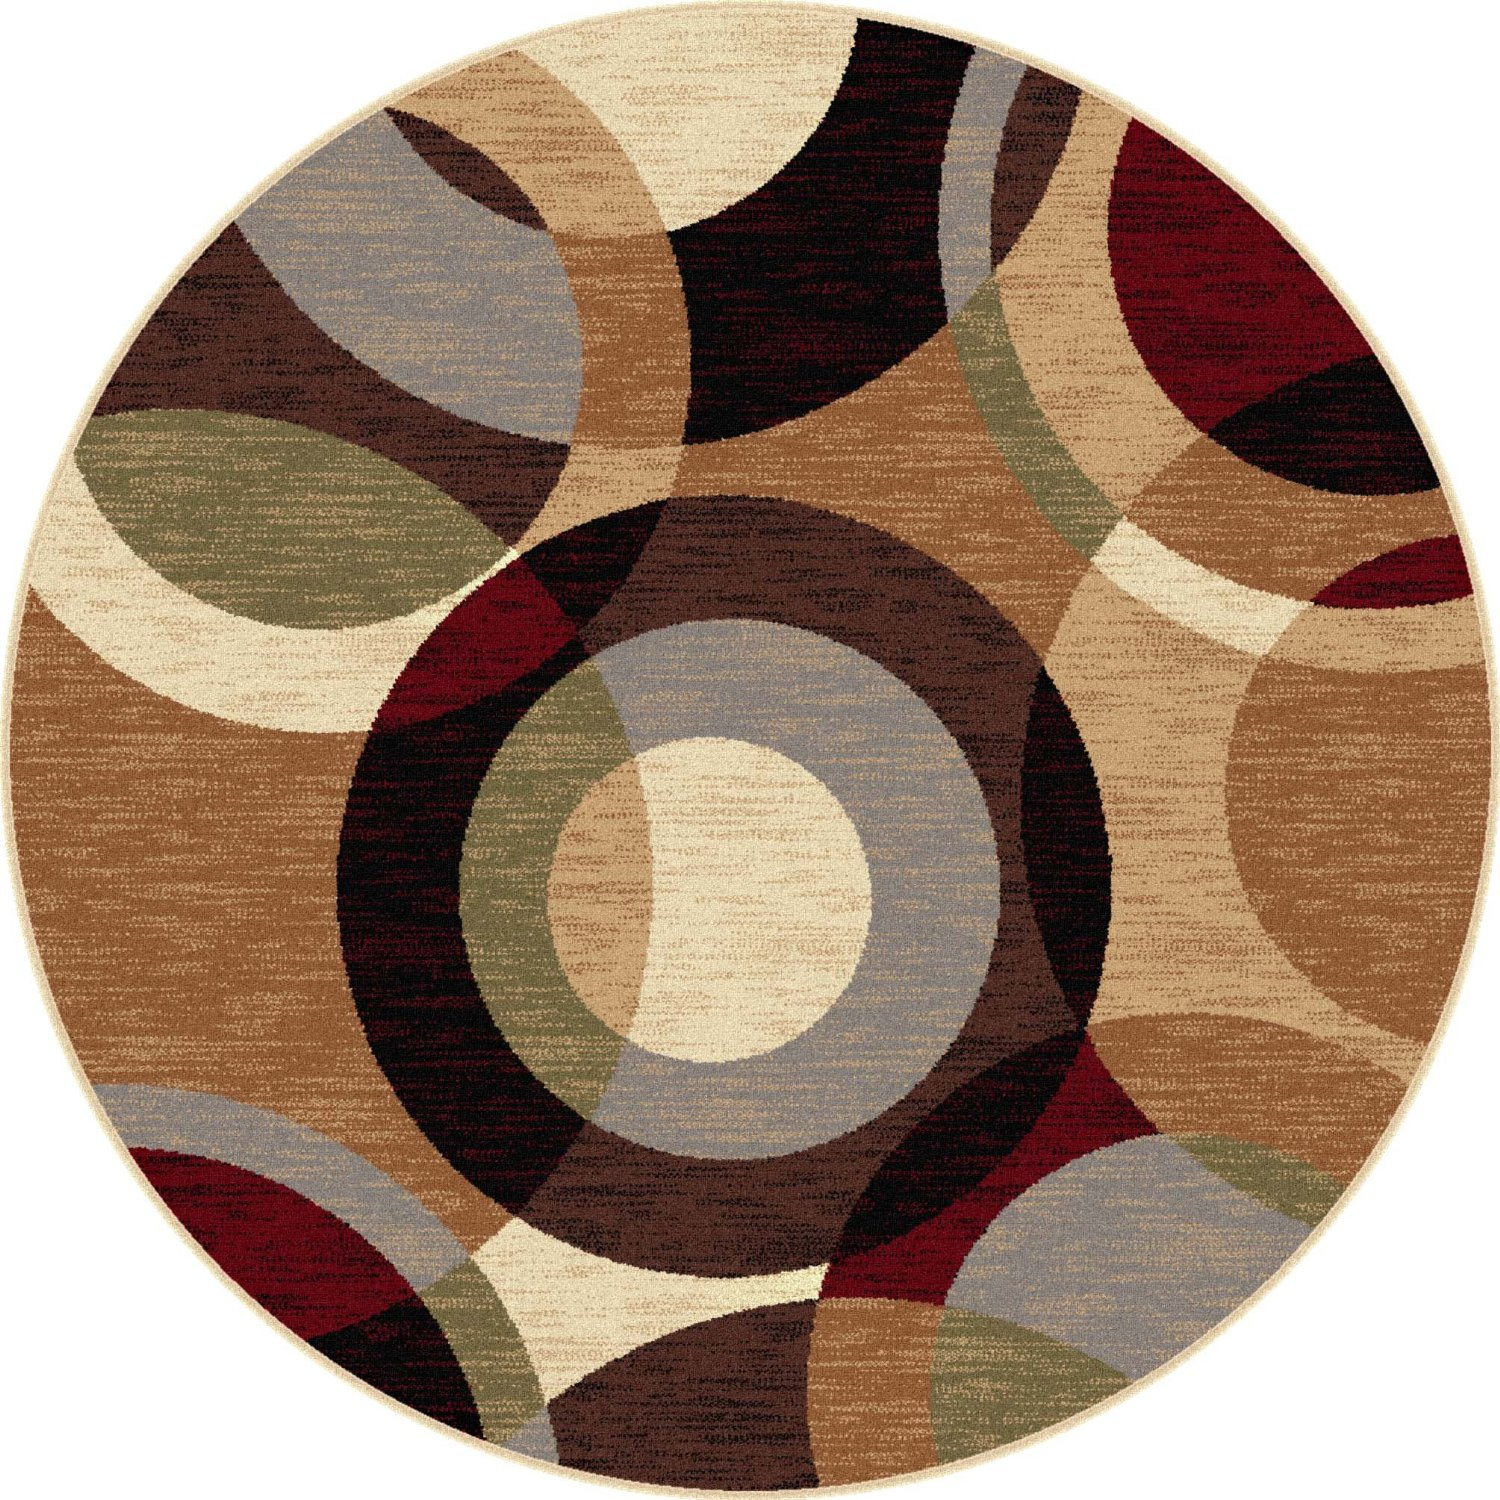 know a bit more about the circular rugs OMPGOIC